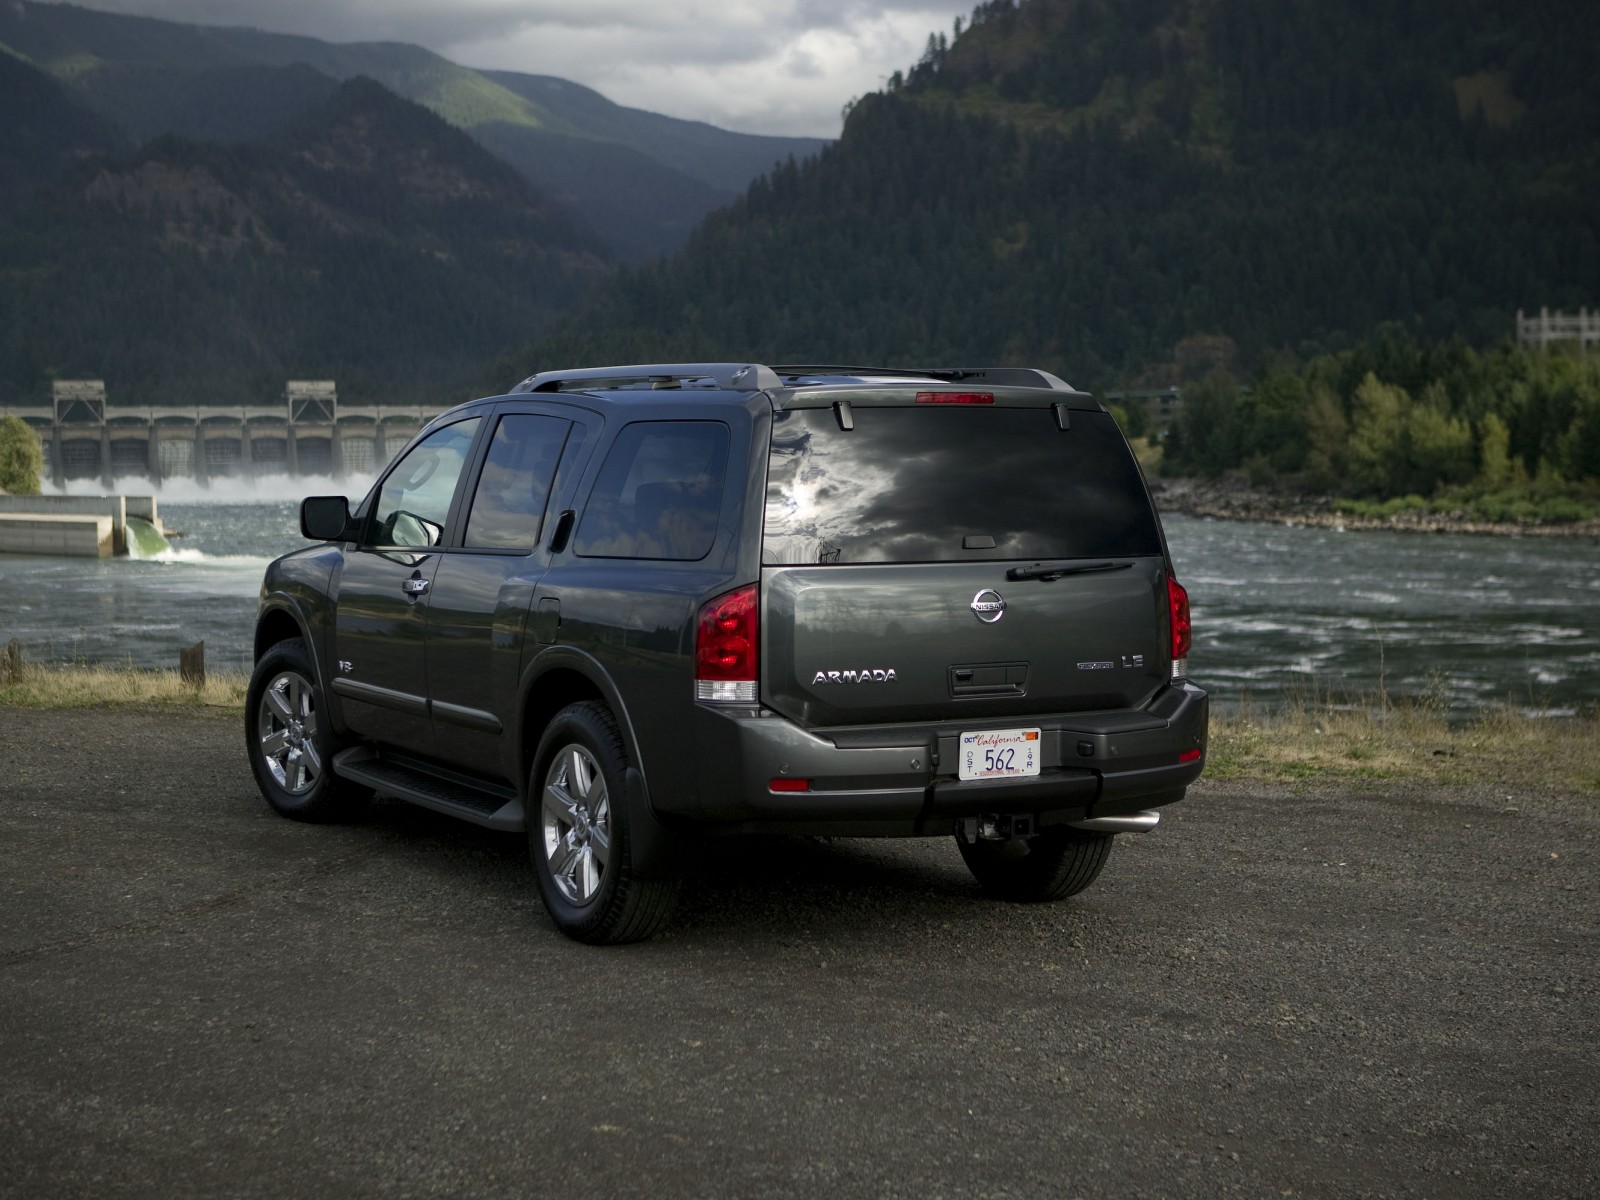 2010 nissan armada wallpapers pictures specifications. Black Bedroom Furniture Sets. Home Design Ideas